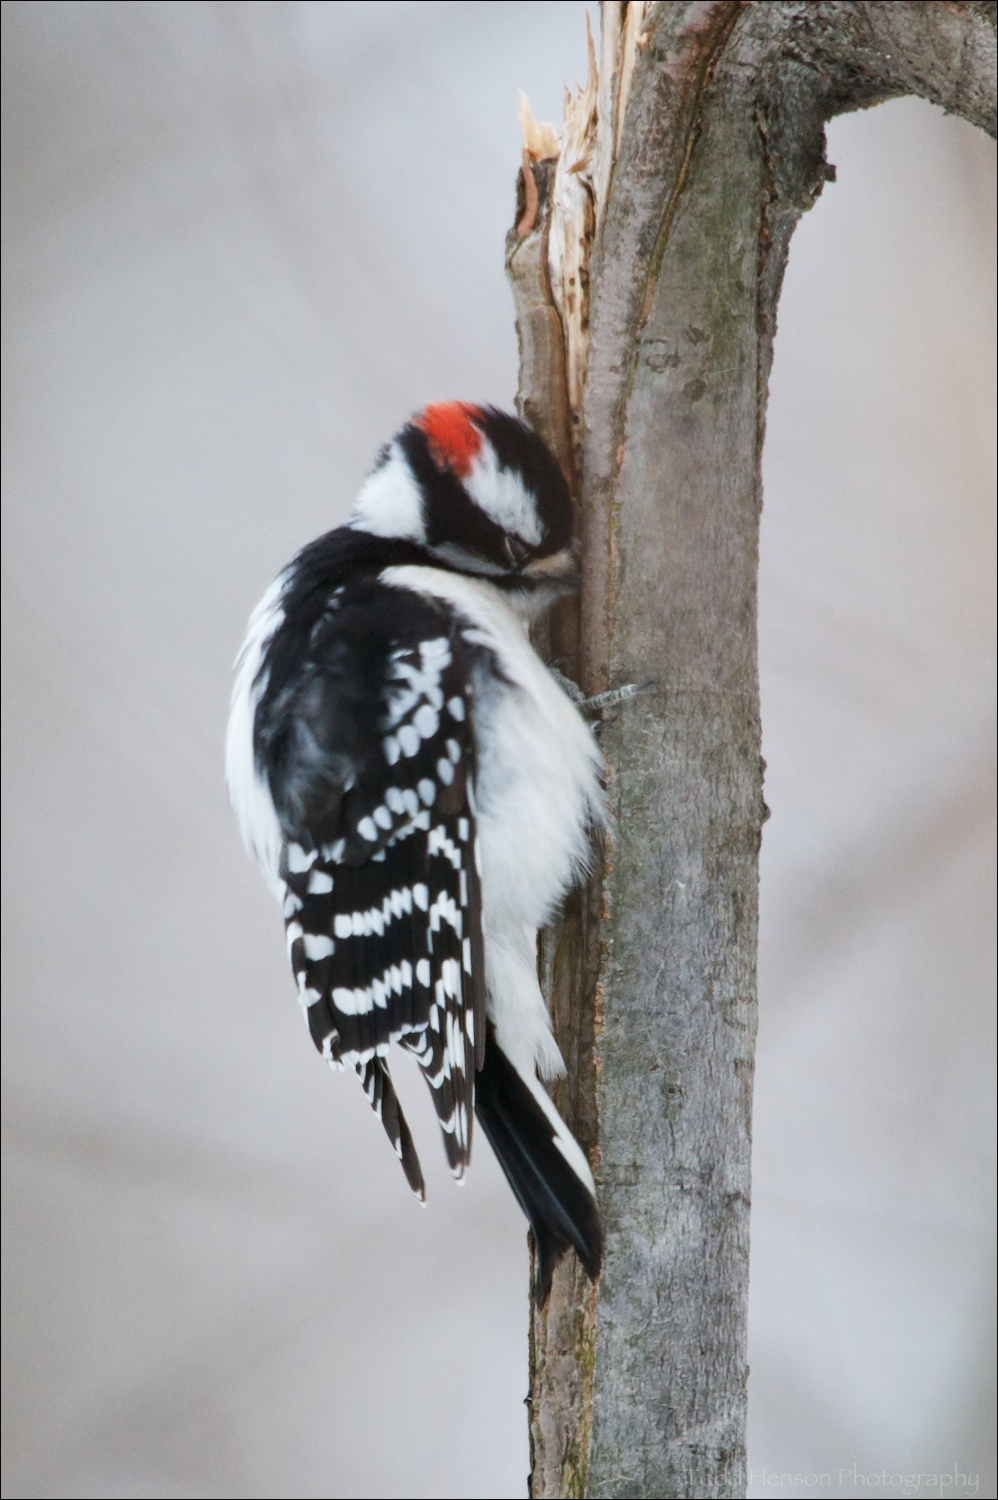 Male Downy Woodpecker, beak fully into crack in small tree, feeding on insects. Notice he closes his eyes when pecking into the tree.